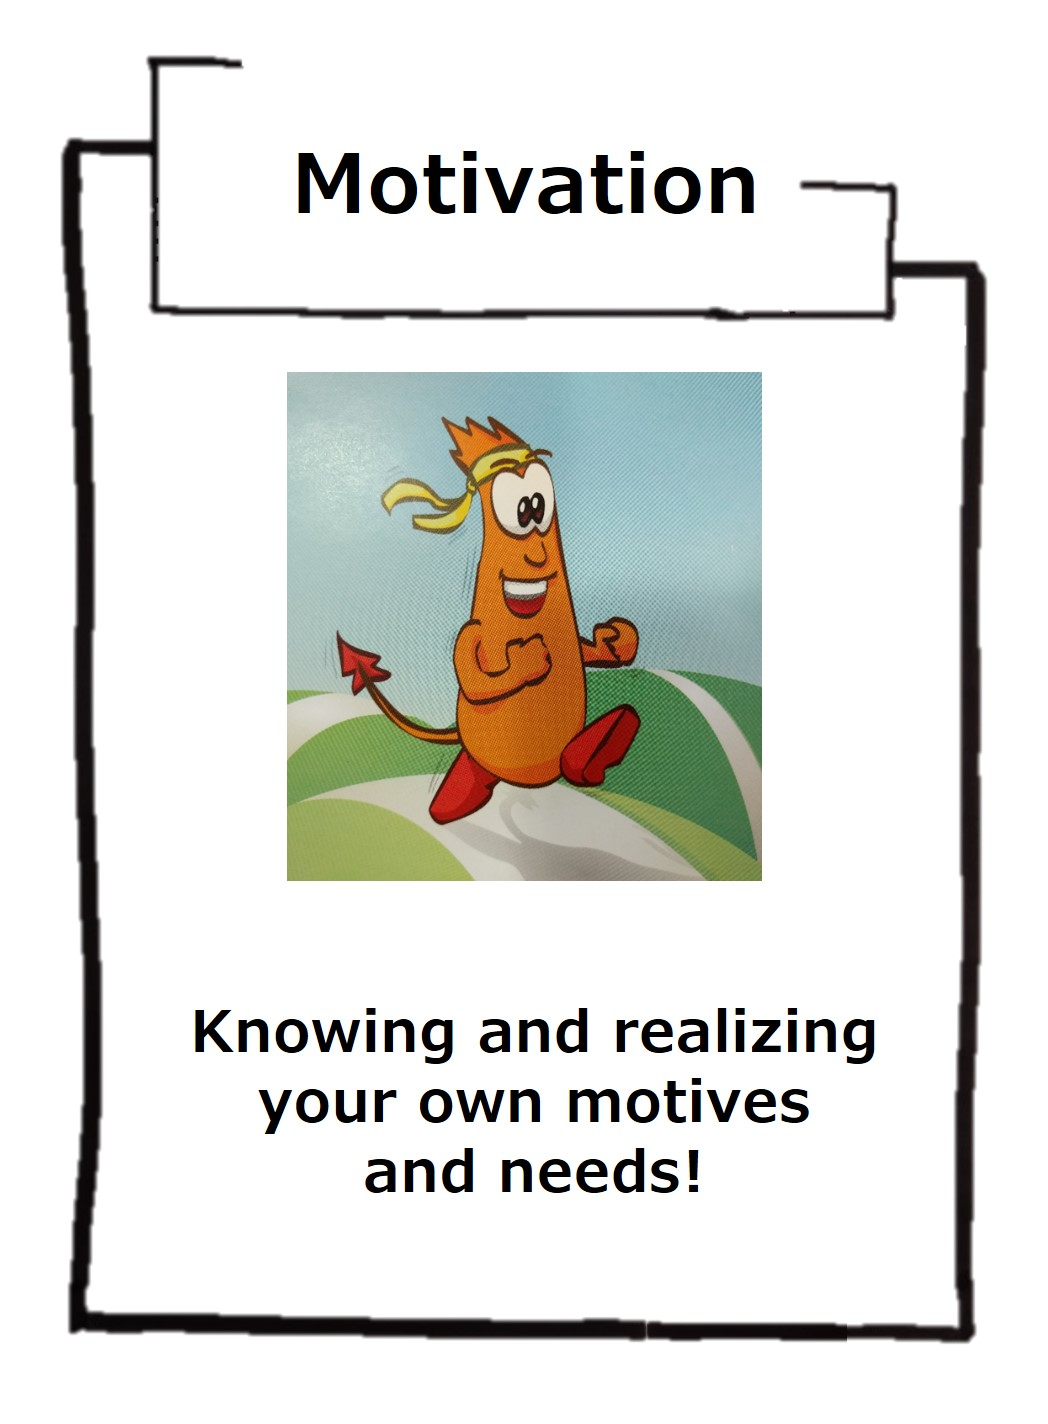 Your own motivation shows in inner strength - we cannot be motivated by others - we need ourselves to move forward!